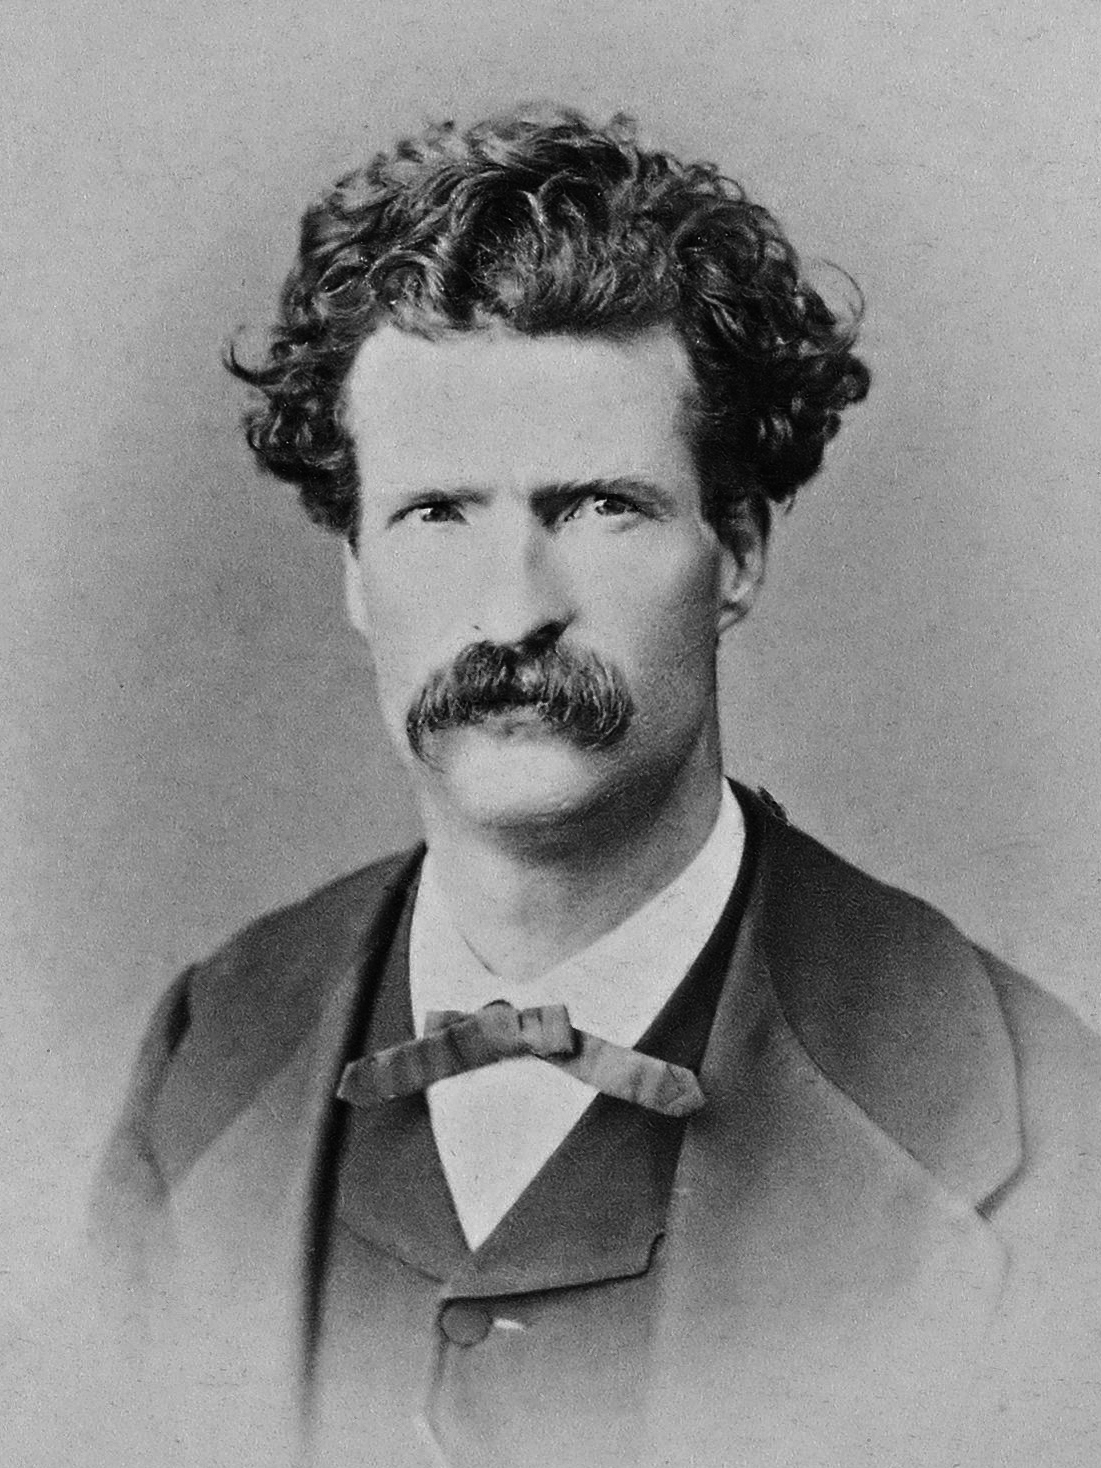 a look into life and writing career of samuel langhorne clemens Mark twain (november 30, 1835 – april 21, 1910), real name samuel langhorne  clemens, was an american writer, humorist,  jump to navigation jump to  search  mark twain was born samuel langhorne clemens on november 30,  1835, in  twain began his career writing light, humorous verse, but he became  a.